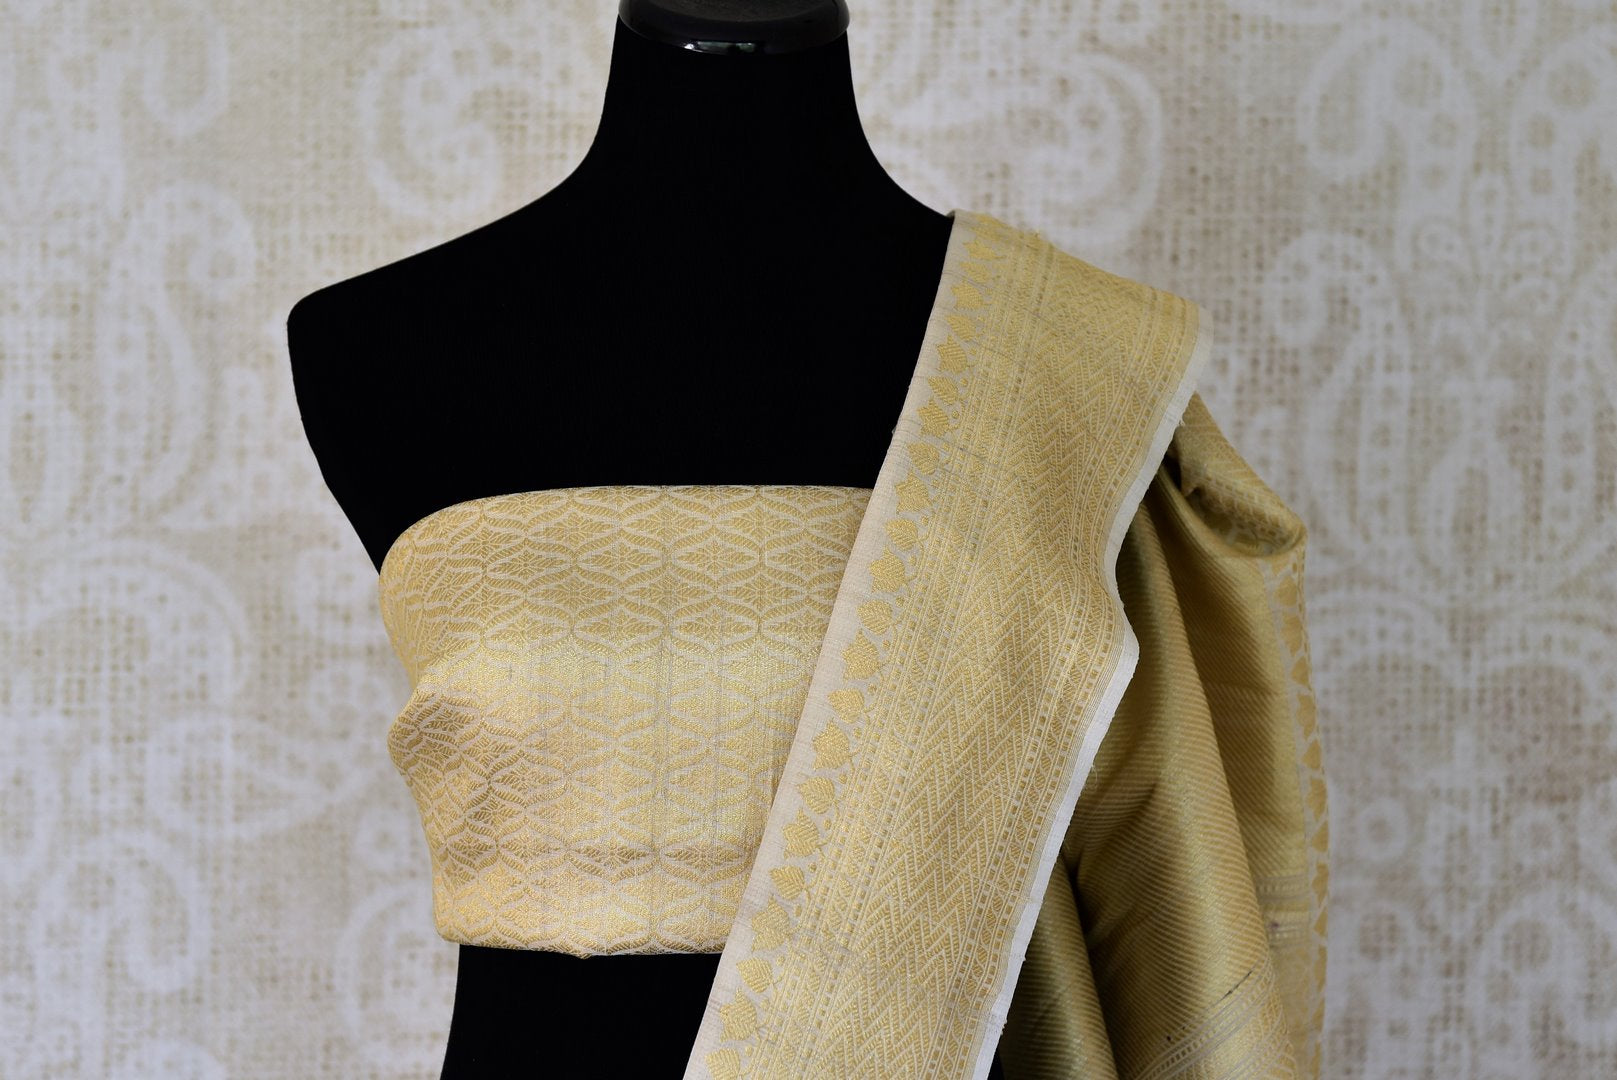 Buy off-white khaddi silk saree with zari tree buta online in USA. Adorn your style with a range of exquisite handwoven sarees from Pure Elegance Indian clothing store in USA. We have an exquisite range of Indian designer sarees, silk saris, Banarasi saris and many other varieties also available at our online store.-blouse pallu